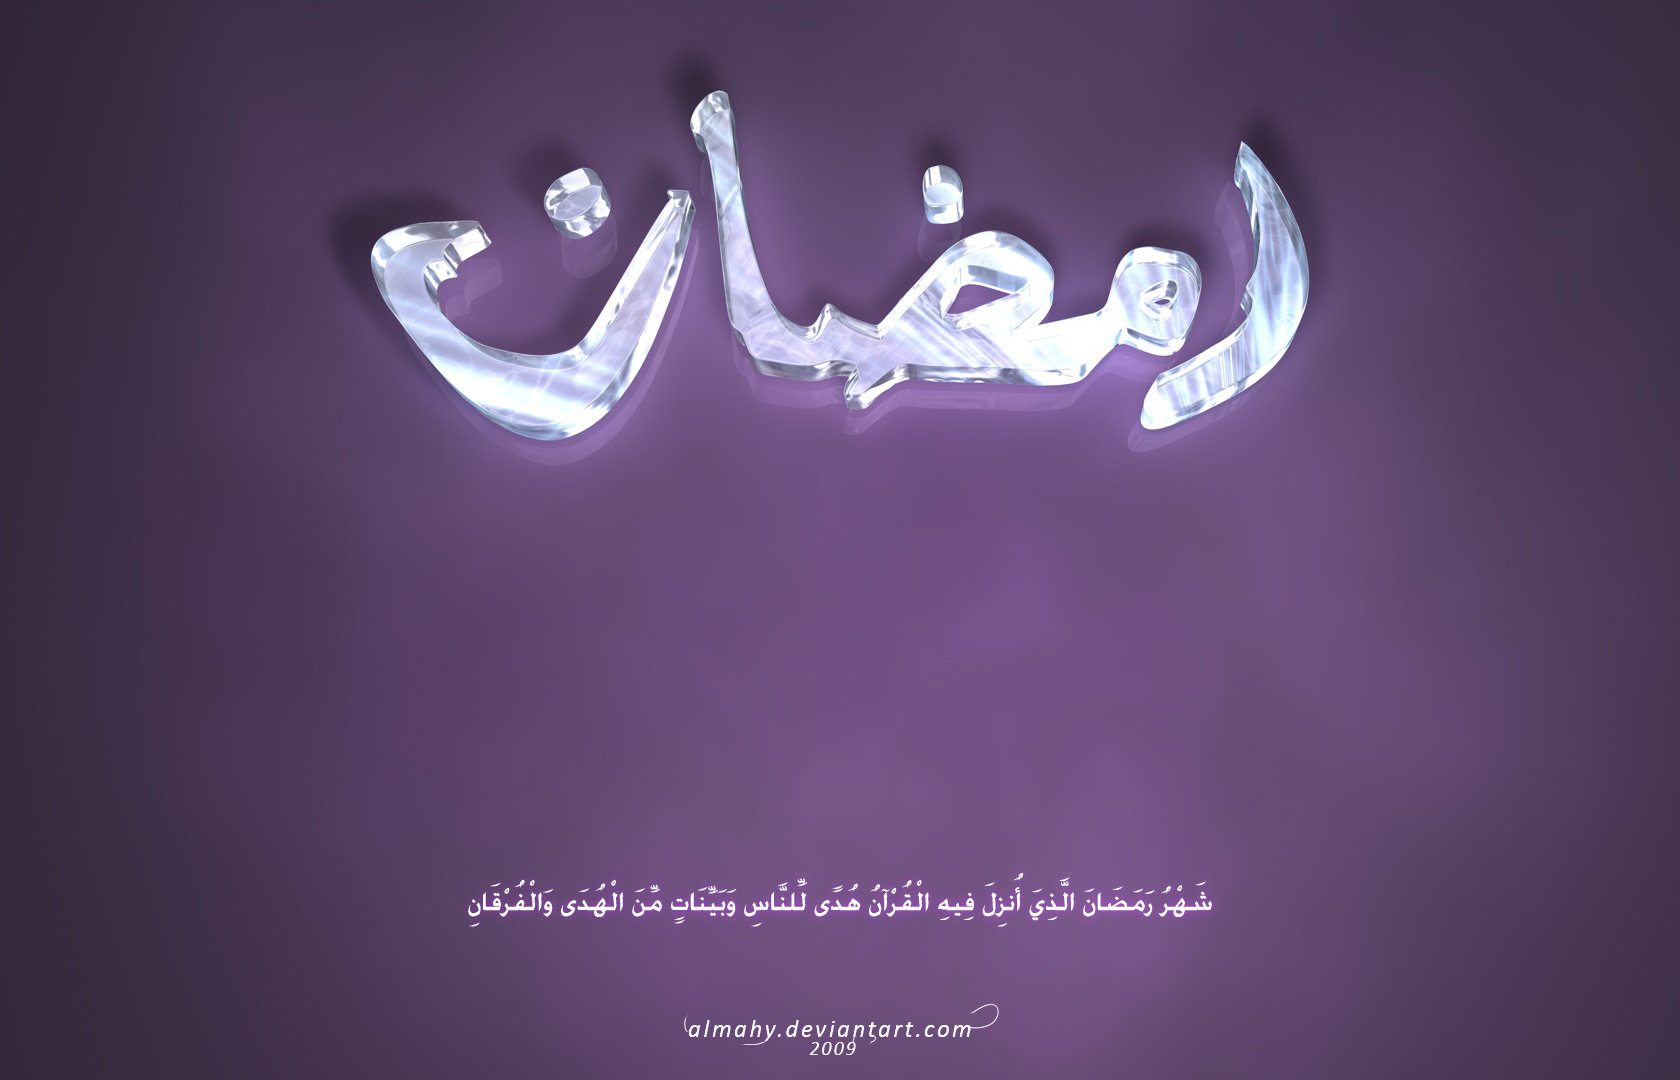 ramazan 3d wallpaper